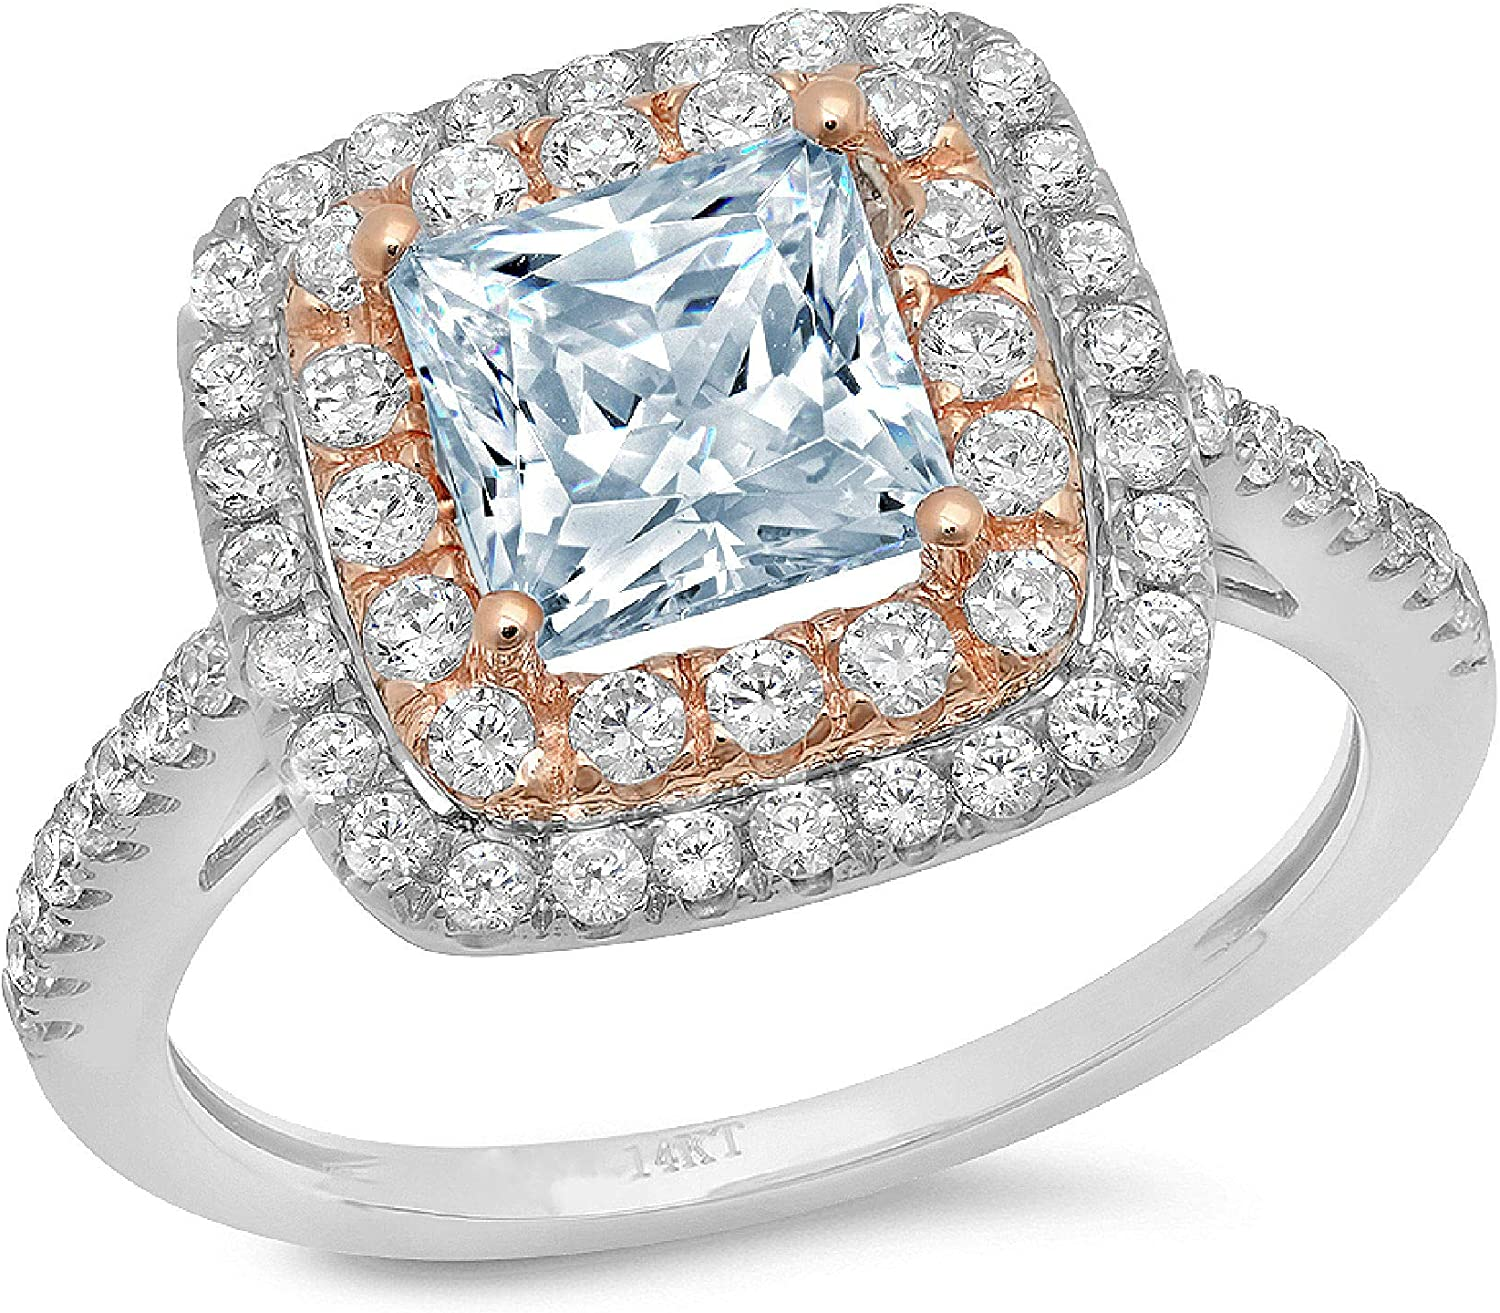 2.36 ct Princess Cut Double Halo Solitaire Accent Genuine Flawless Natural Sky Blue Topaz Gemstone Engagement Promise Statement Anniversary Bridal Wedding Ring Solid 18K 2 tone Gold